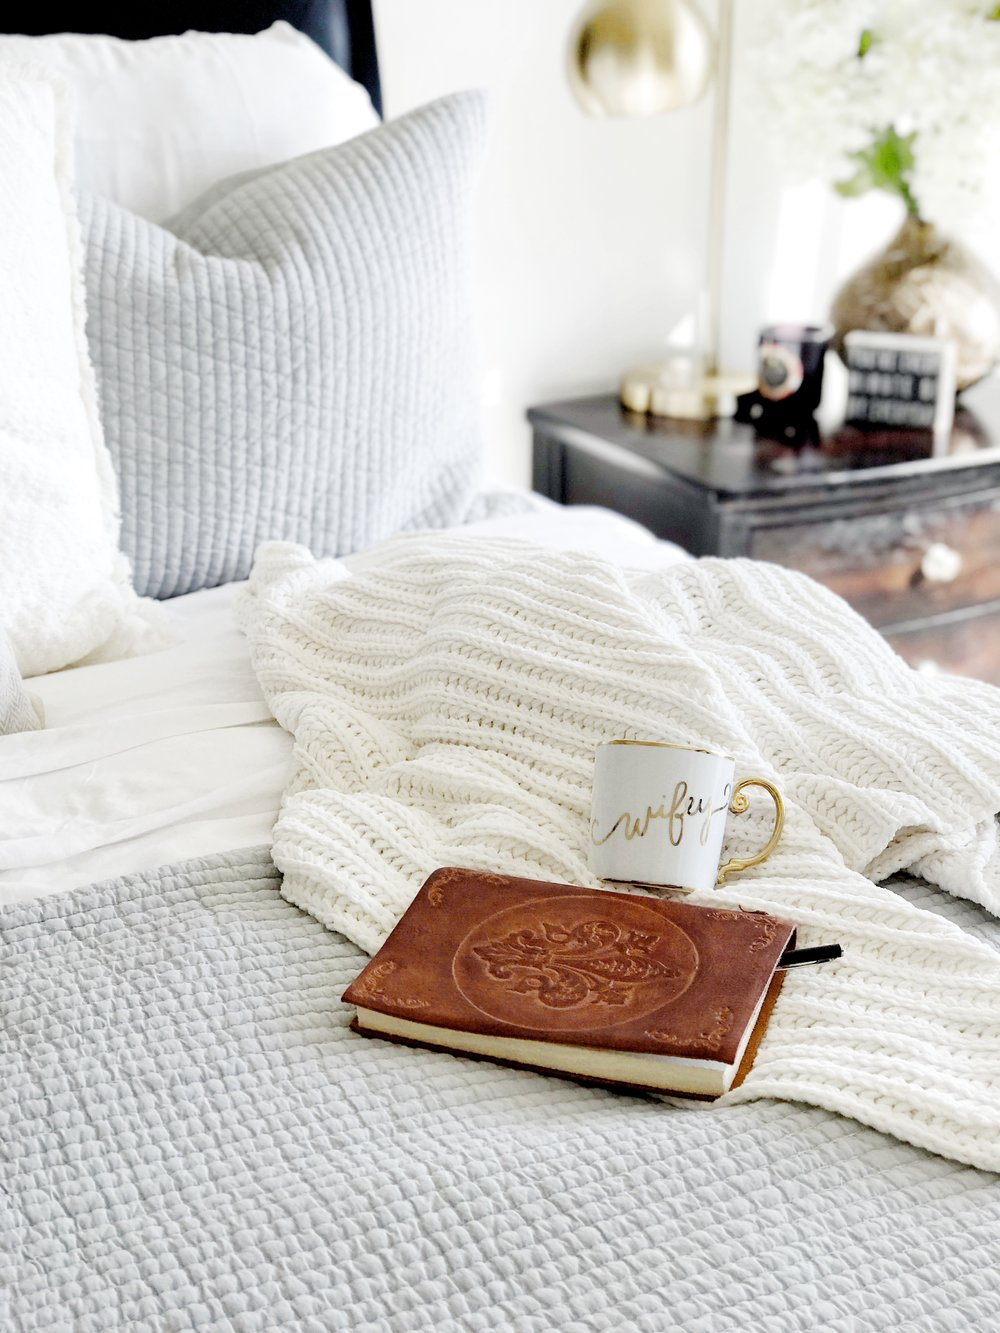 Our Bed:the {cozy} basics - the coziest (affordable!) basics you didn't know you needed .. ;)